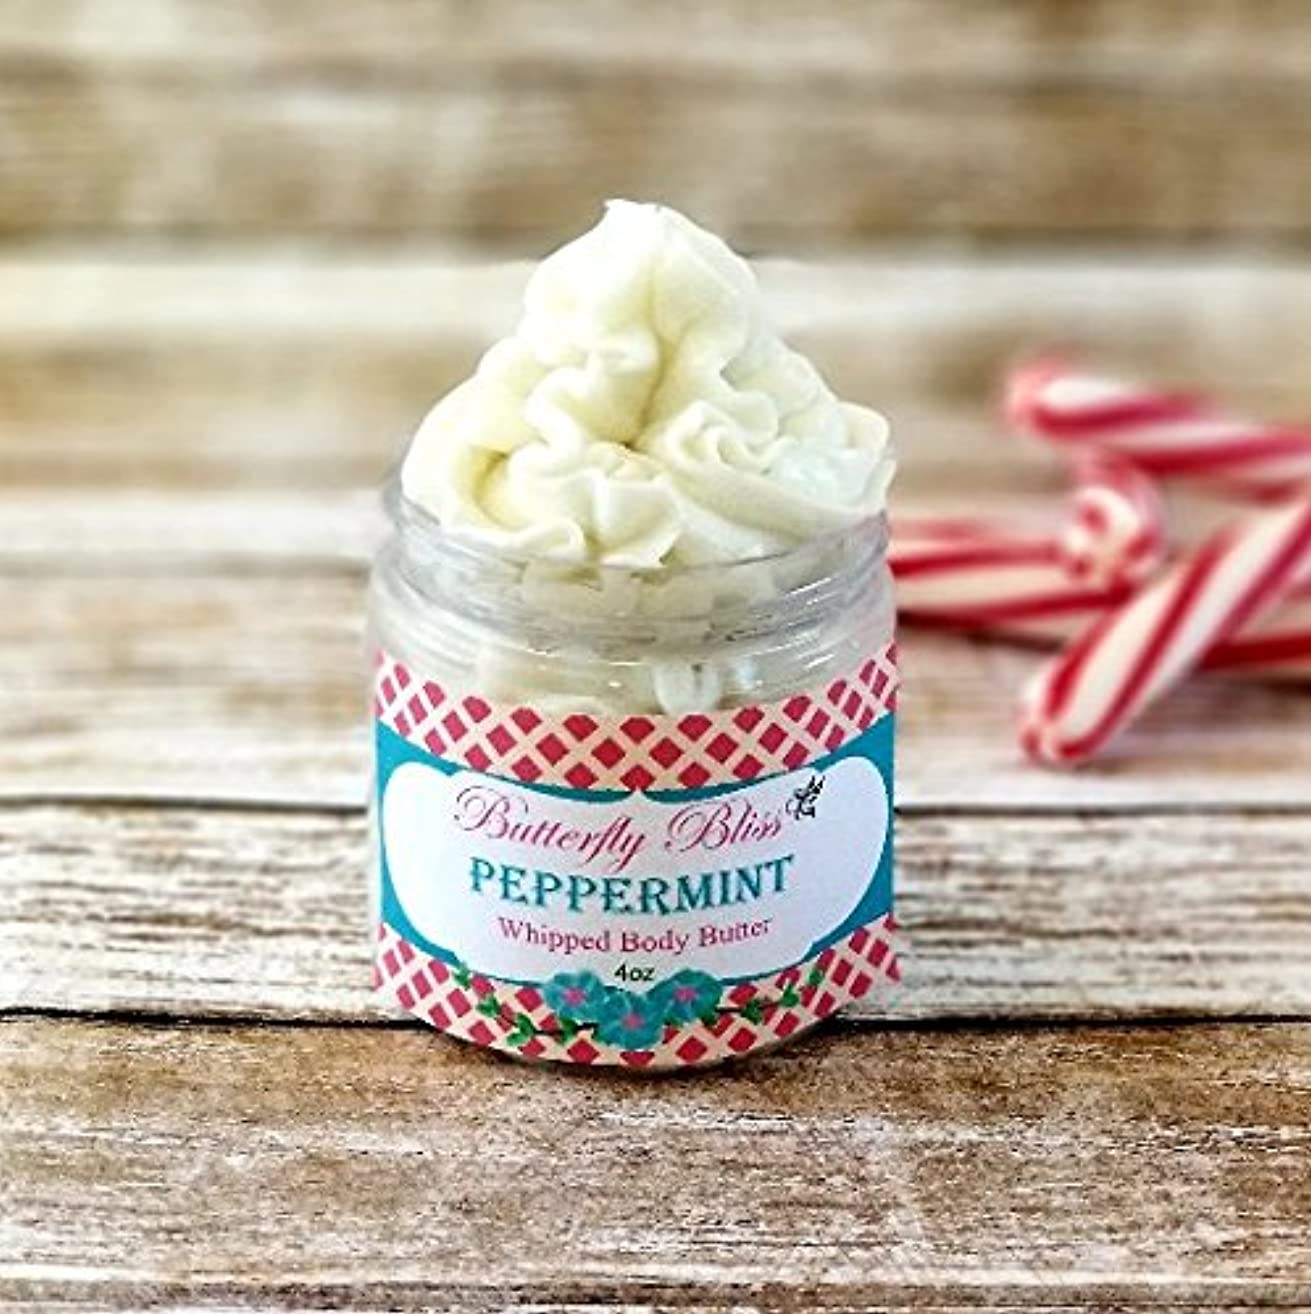 Peppermint Whipped Body Butter, natural lotion, organic, 4oz jar, made with shea butter, mango butter, coconut oil, almond oil